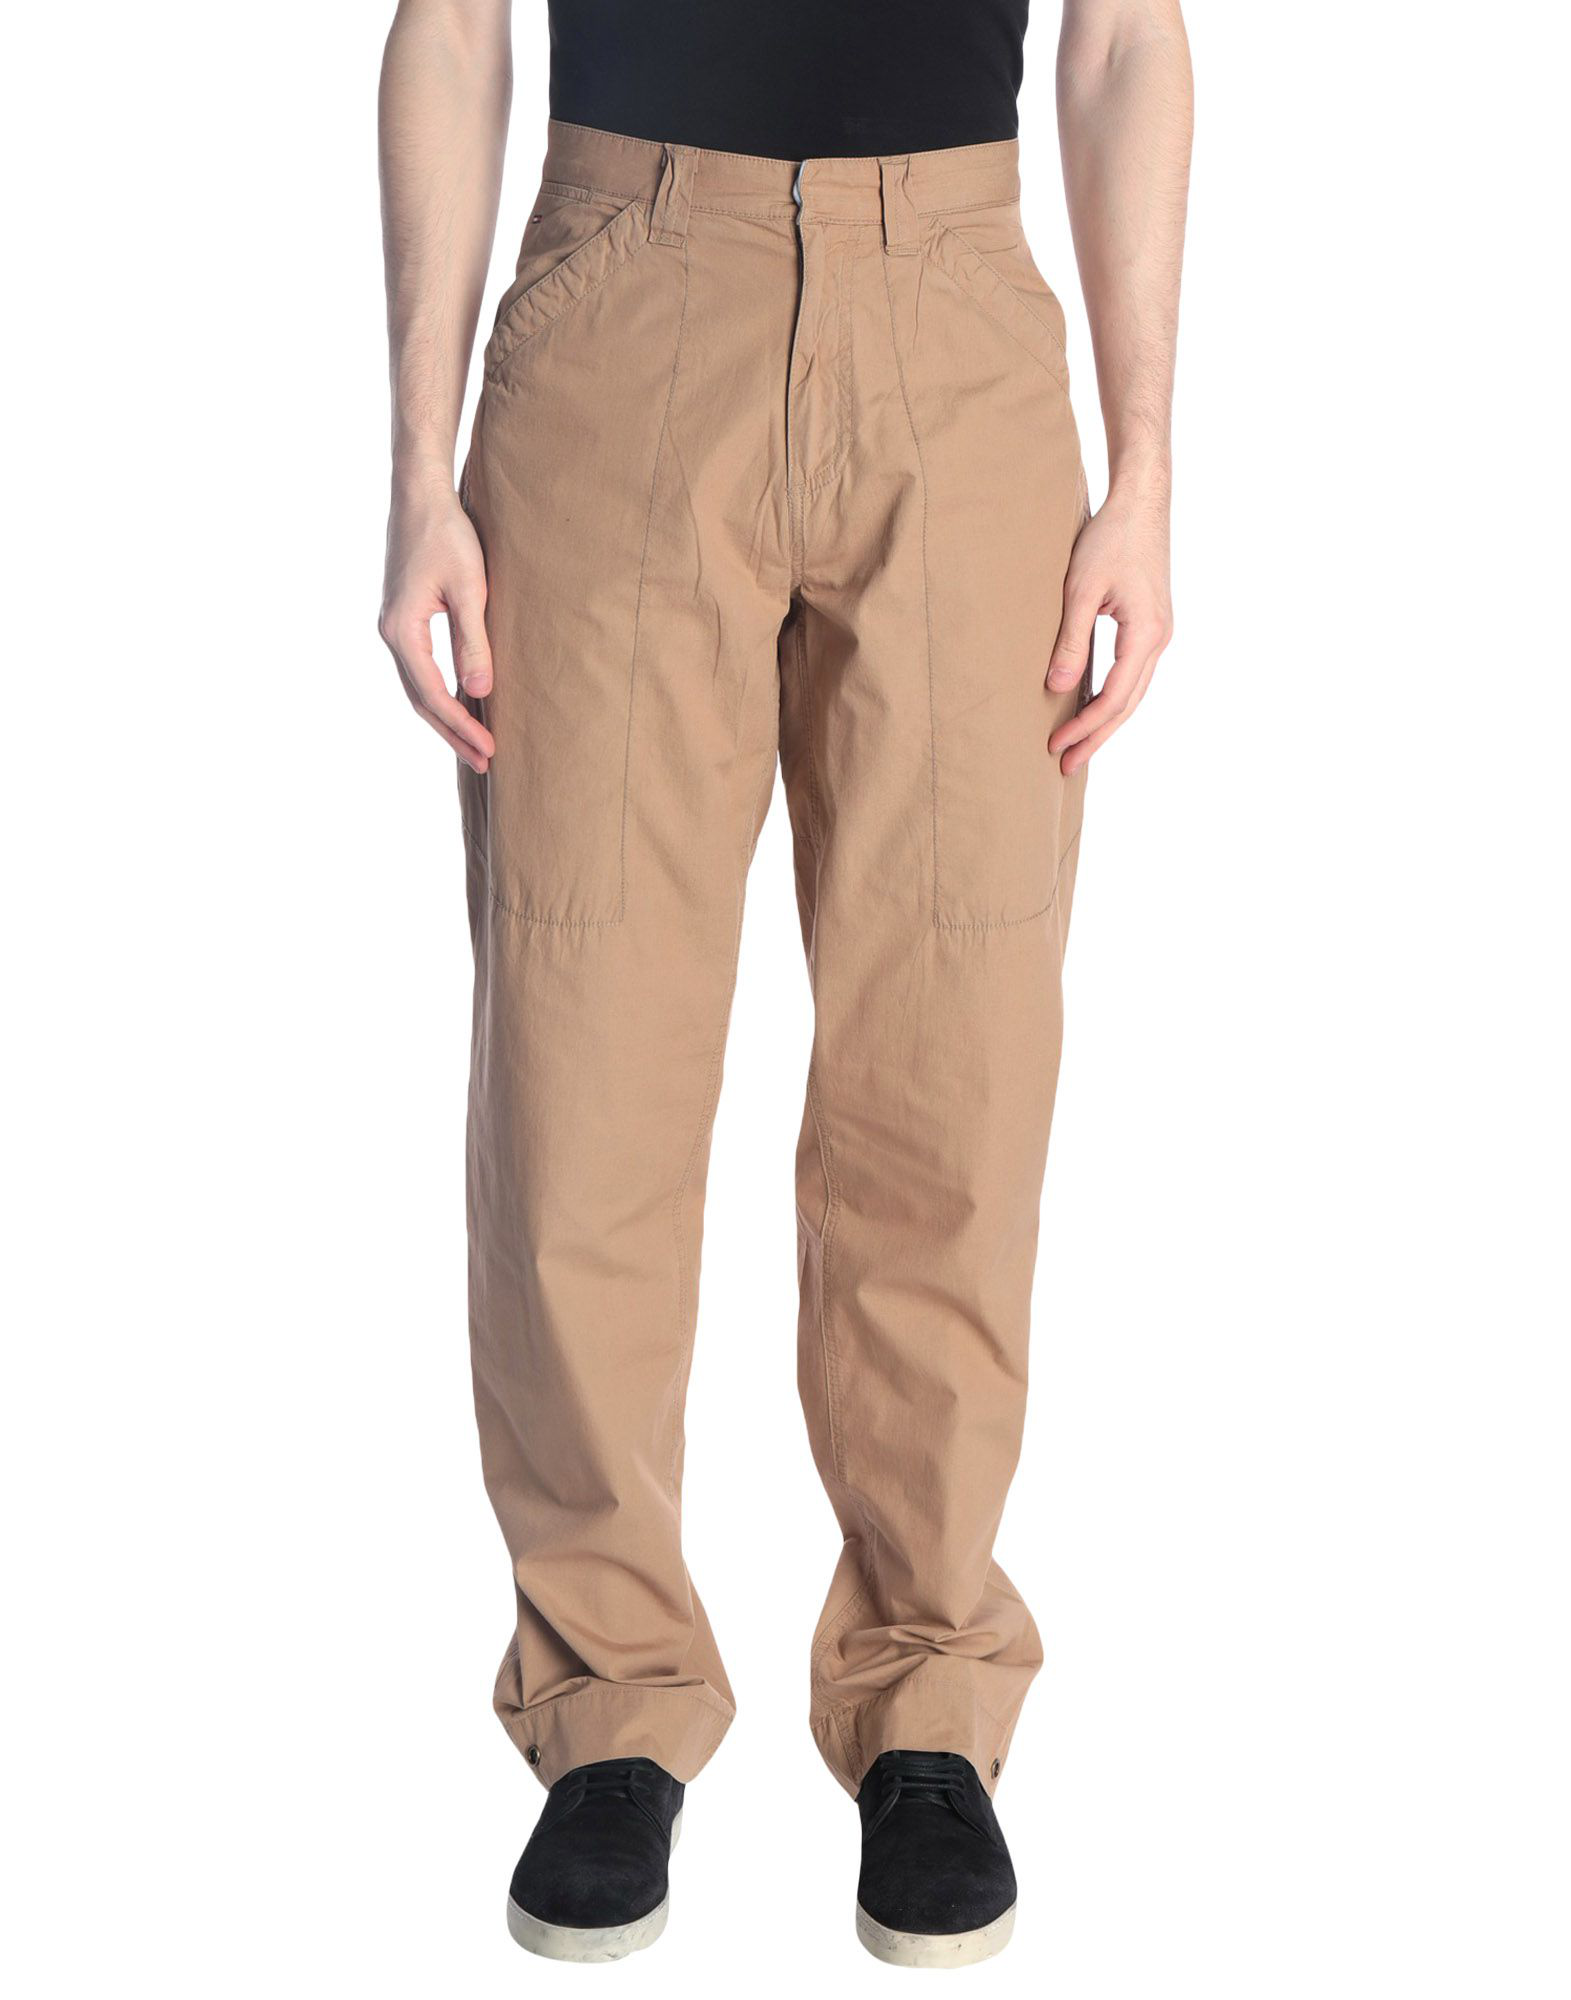 Casual Pants in Camel